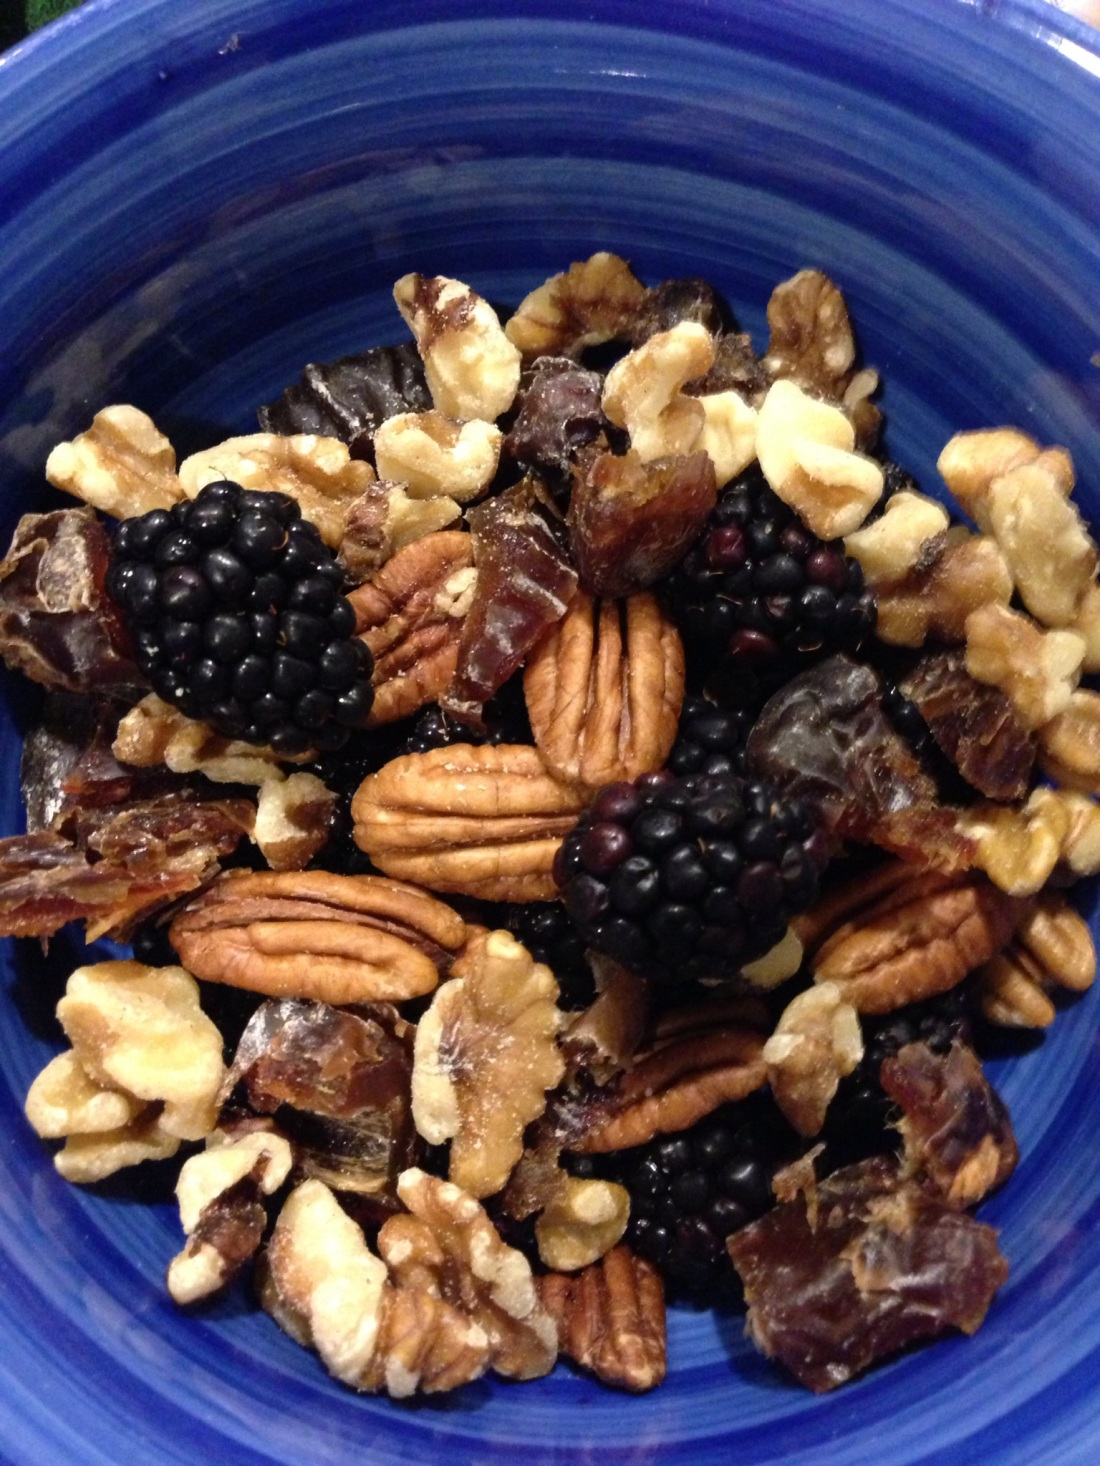 Fresh Blackberries, Raw Nuts, Dried Medjool Dates